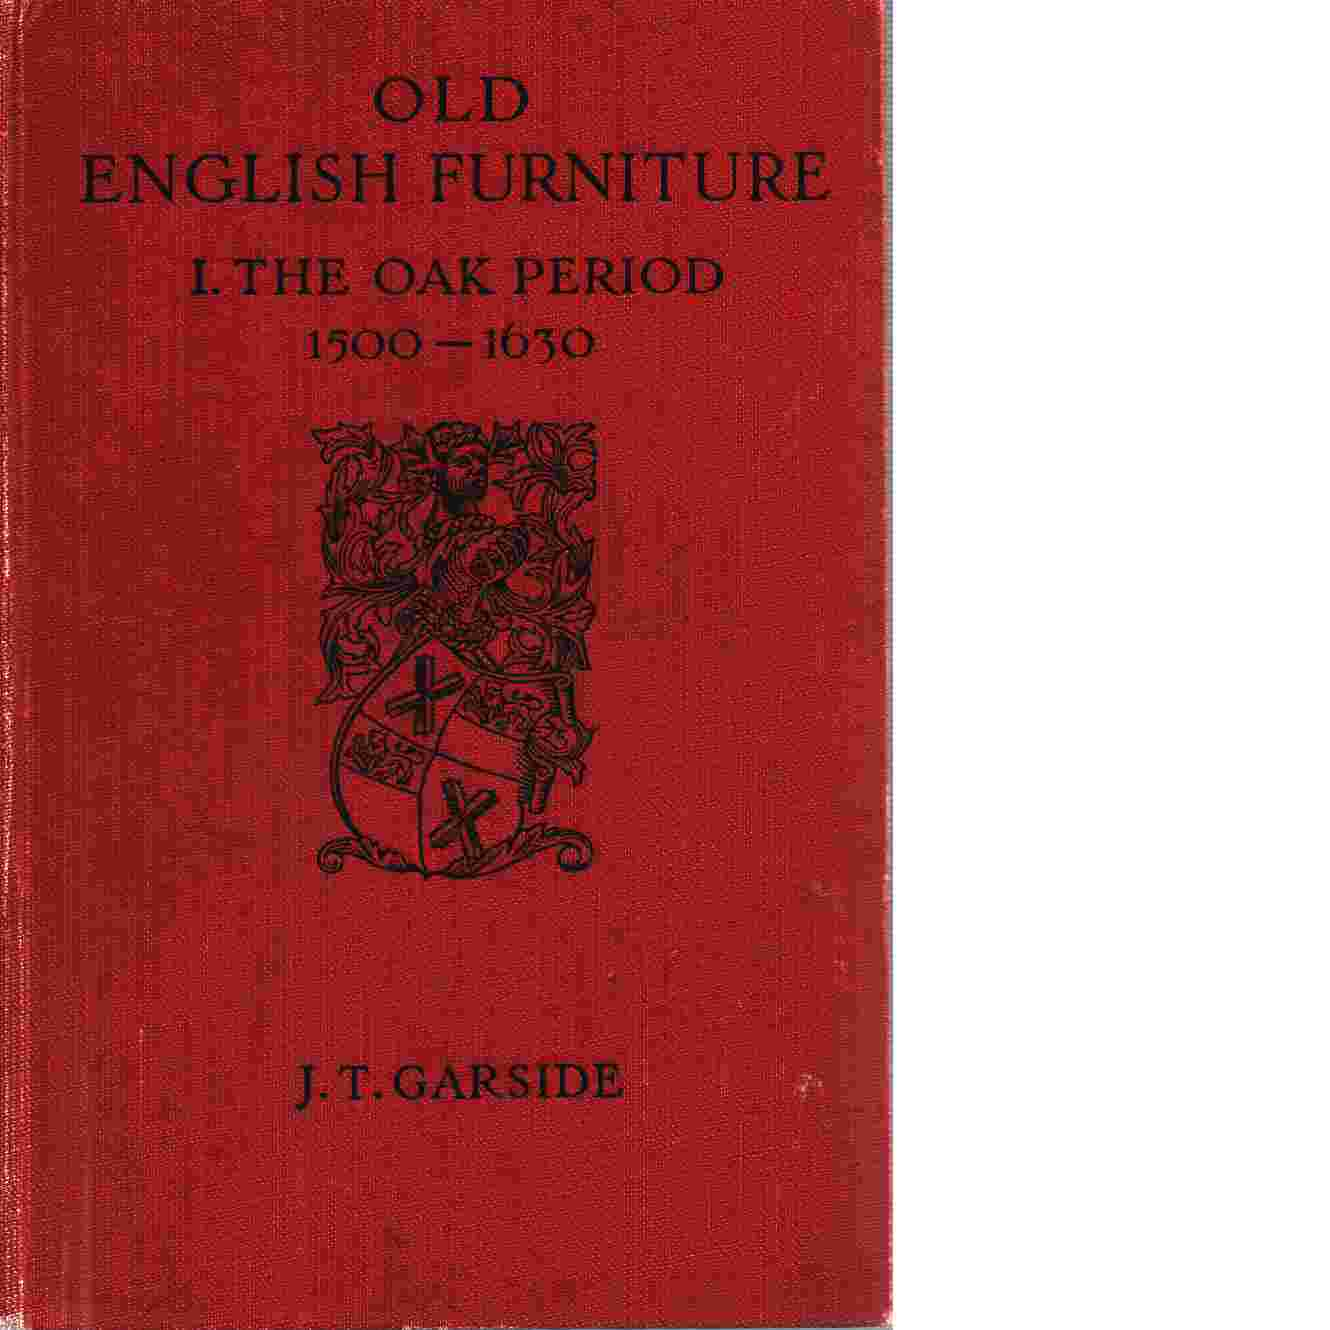 Old English furniture - Garside, J. T.